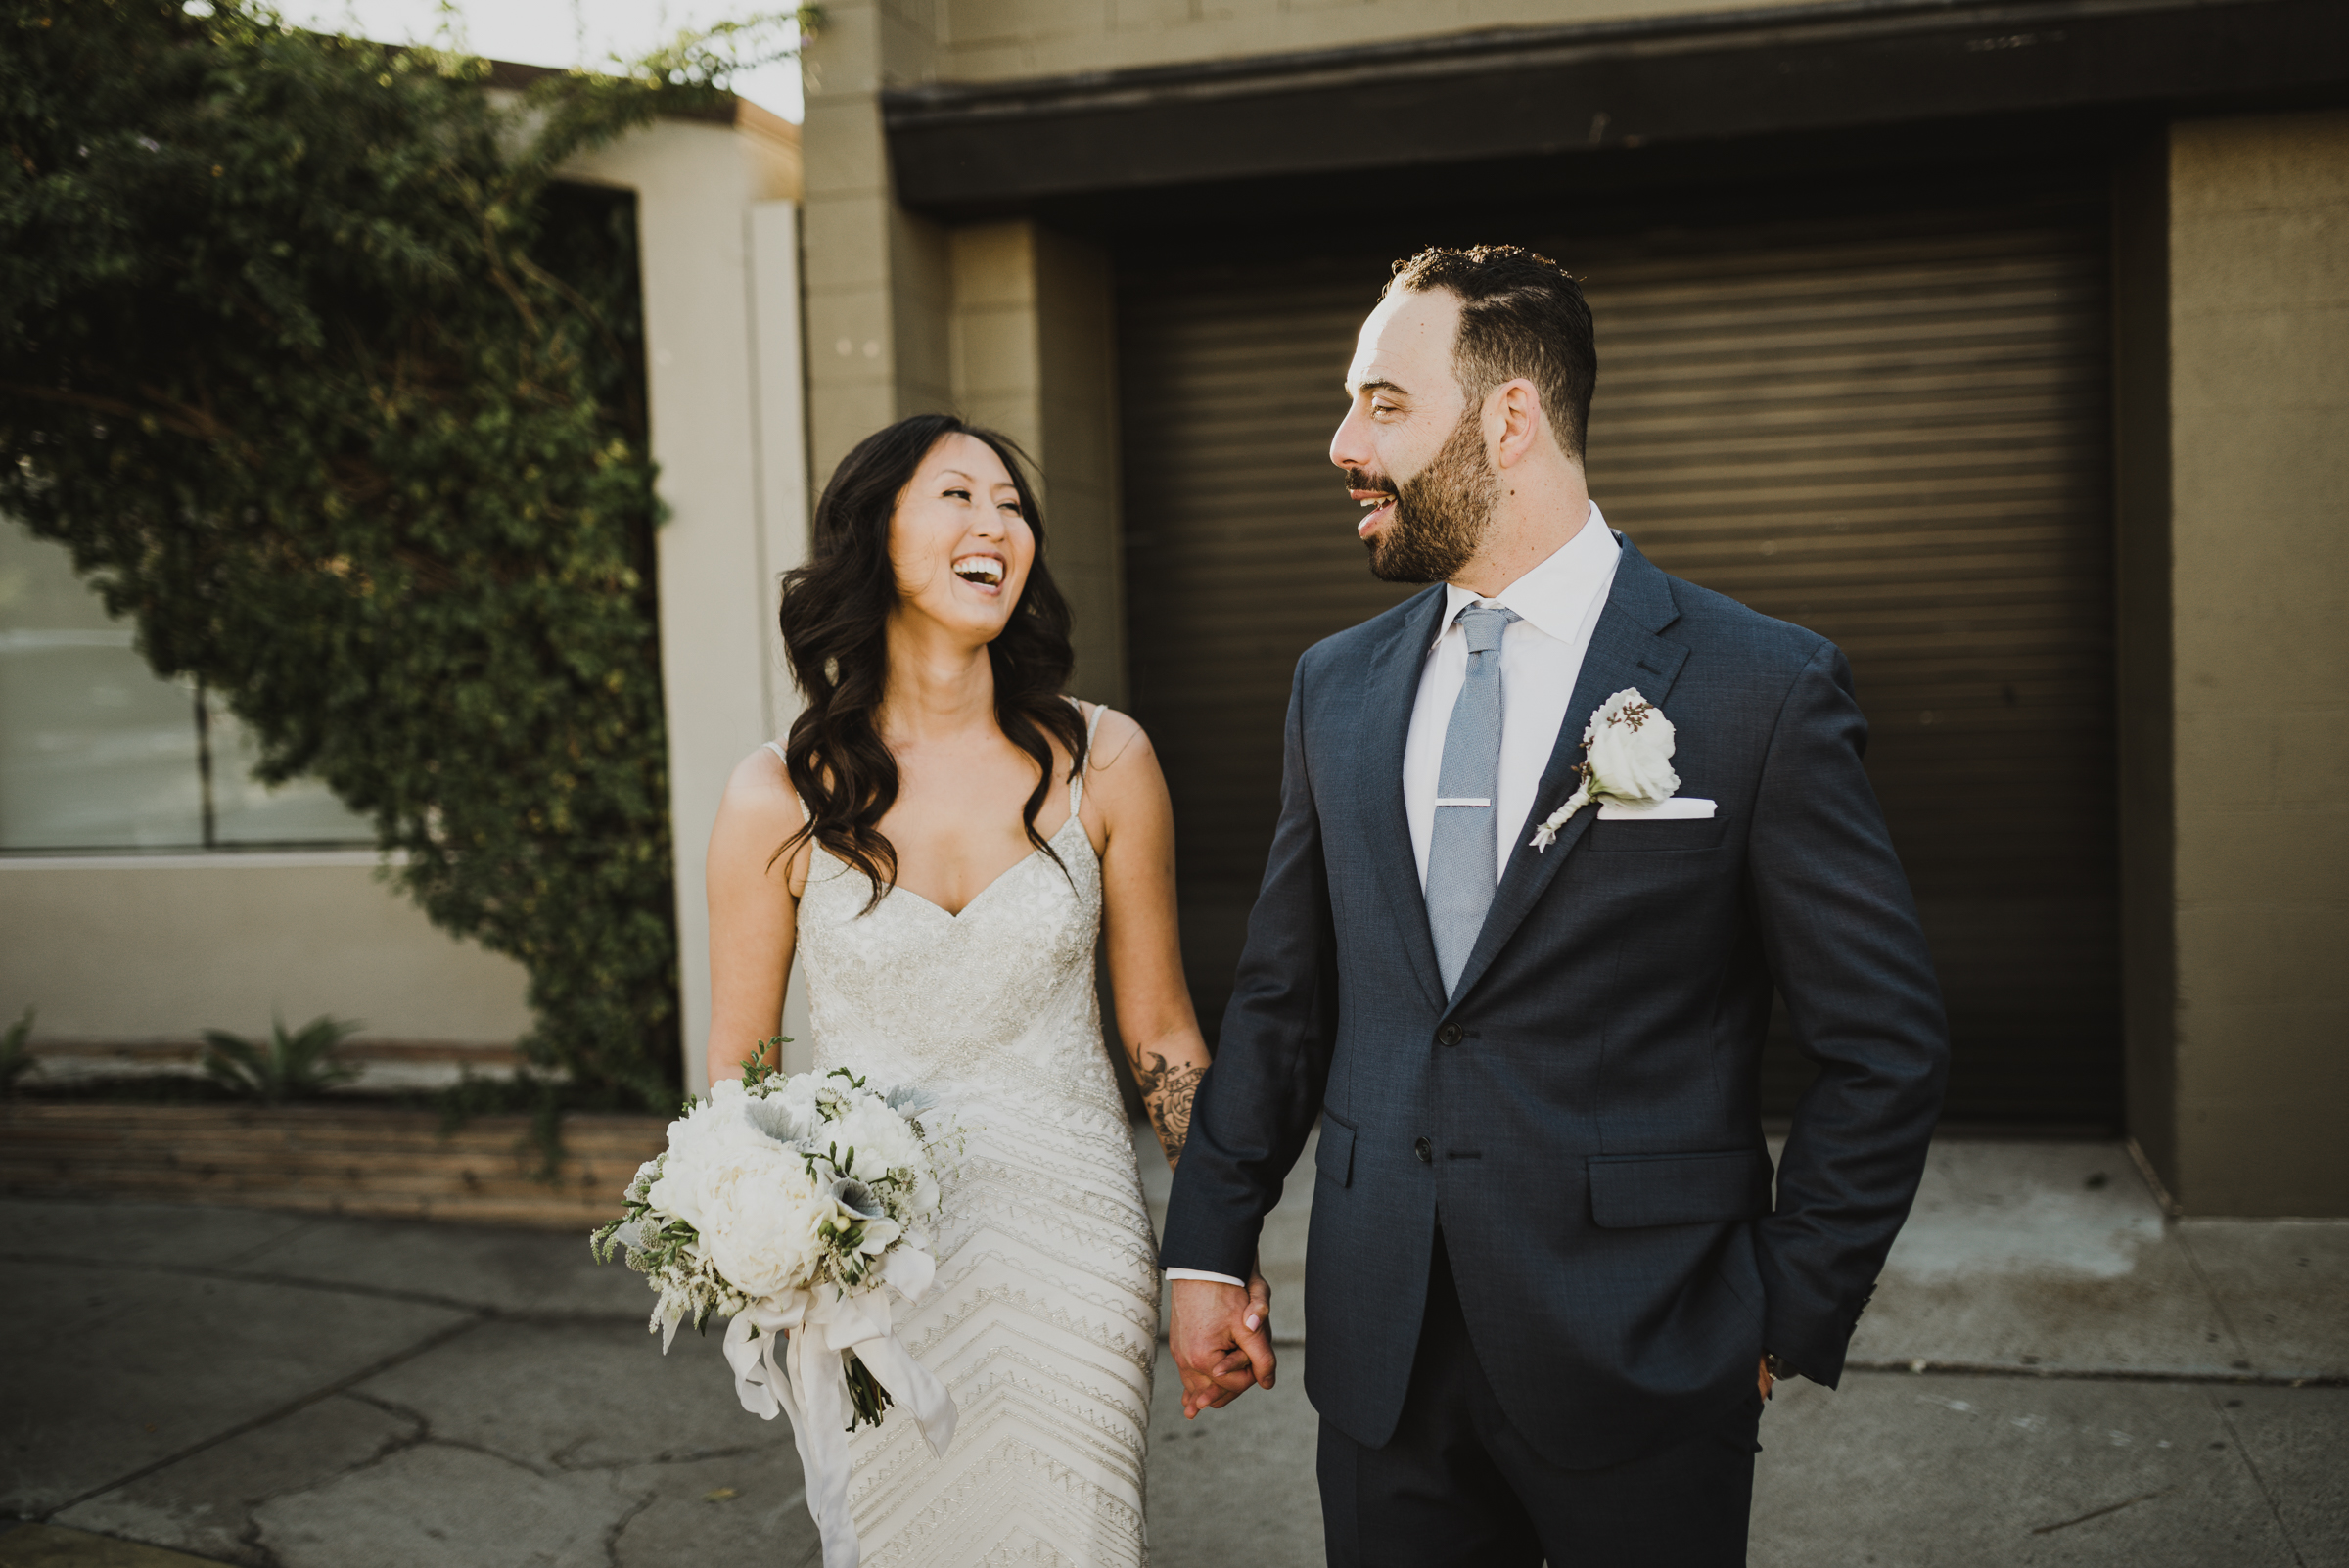 ©Isaiah + Taylor Photography - Big Door Studios Wedding, El Segundo, Los Angeles Wedding Photographer-29.jpg